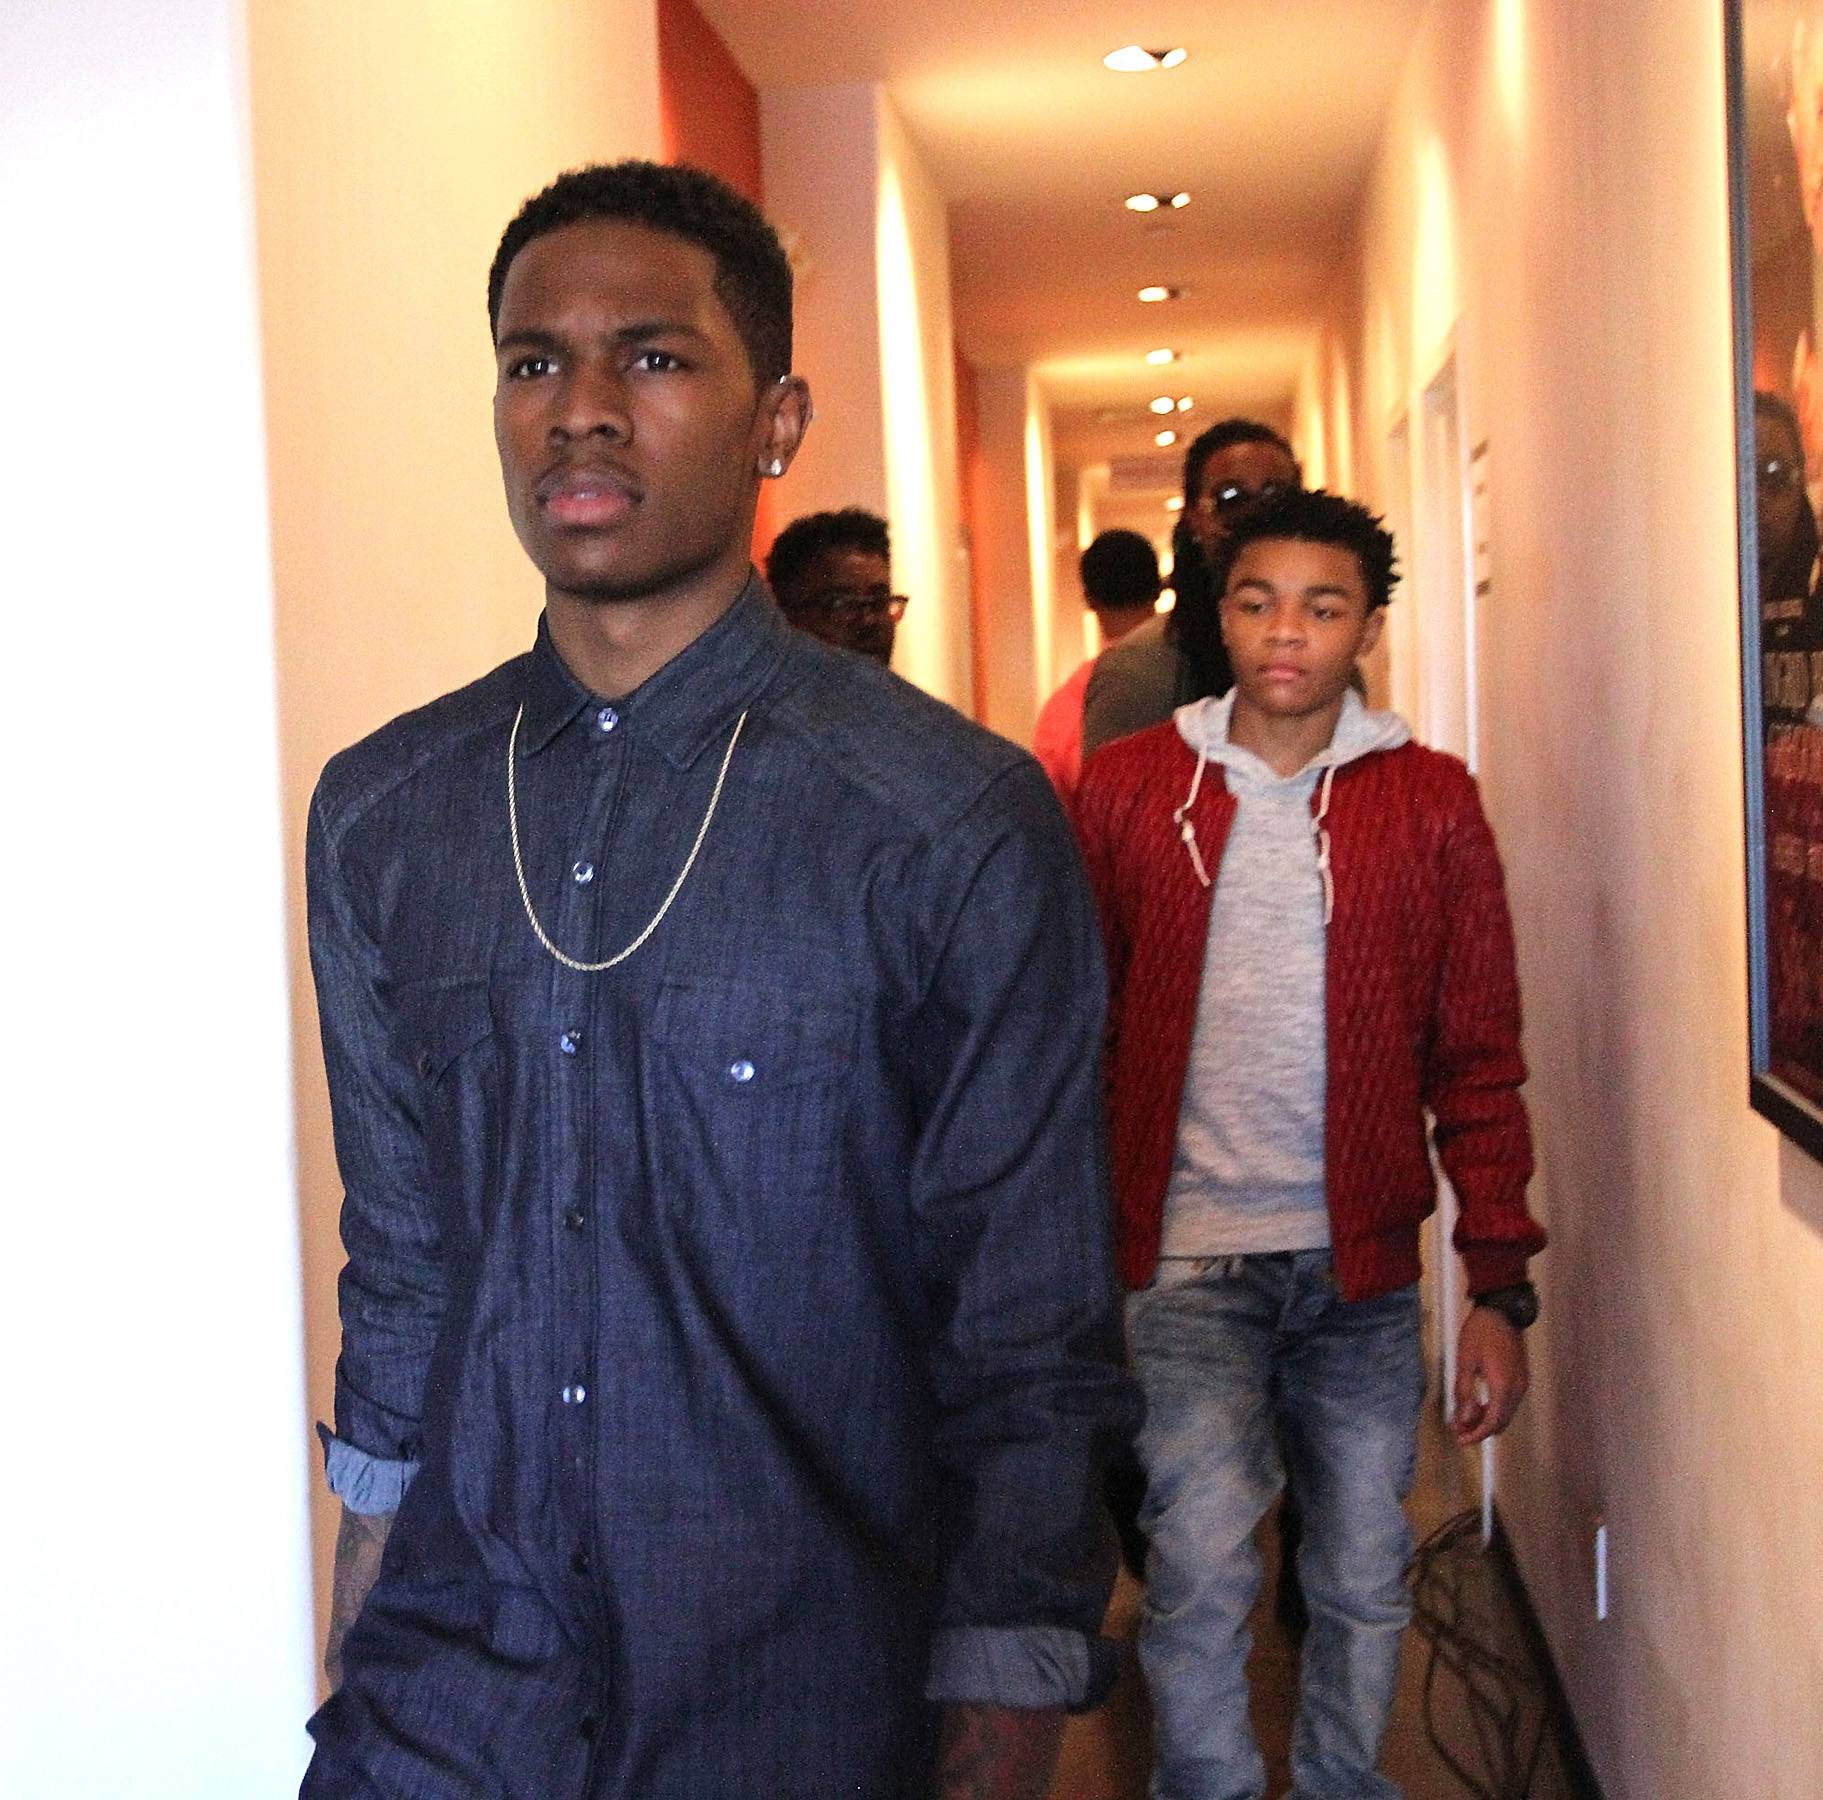 'We Dem Boyz' - Lil' Shawn (a.k.a. Tab of JGERetro) and Tre swag backstage.   (Photo: Maury Phillips/WireImage)